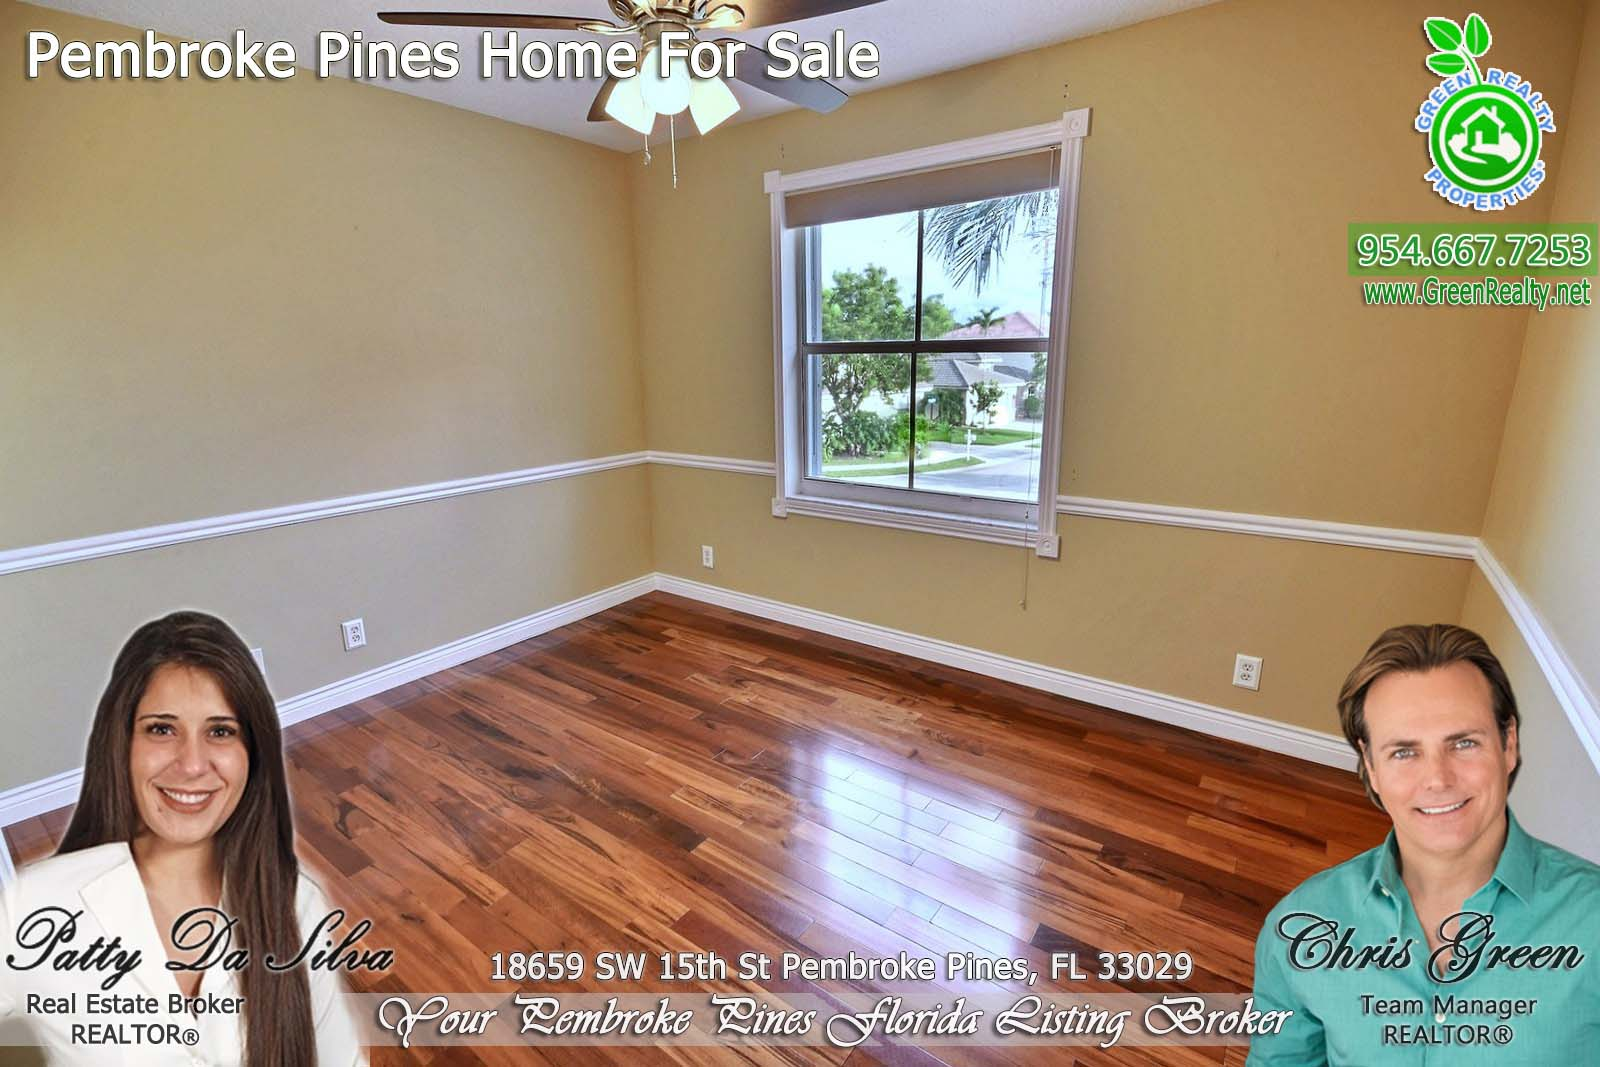 41 Pembroke Pines Homes (5)